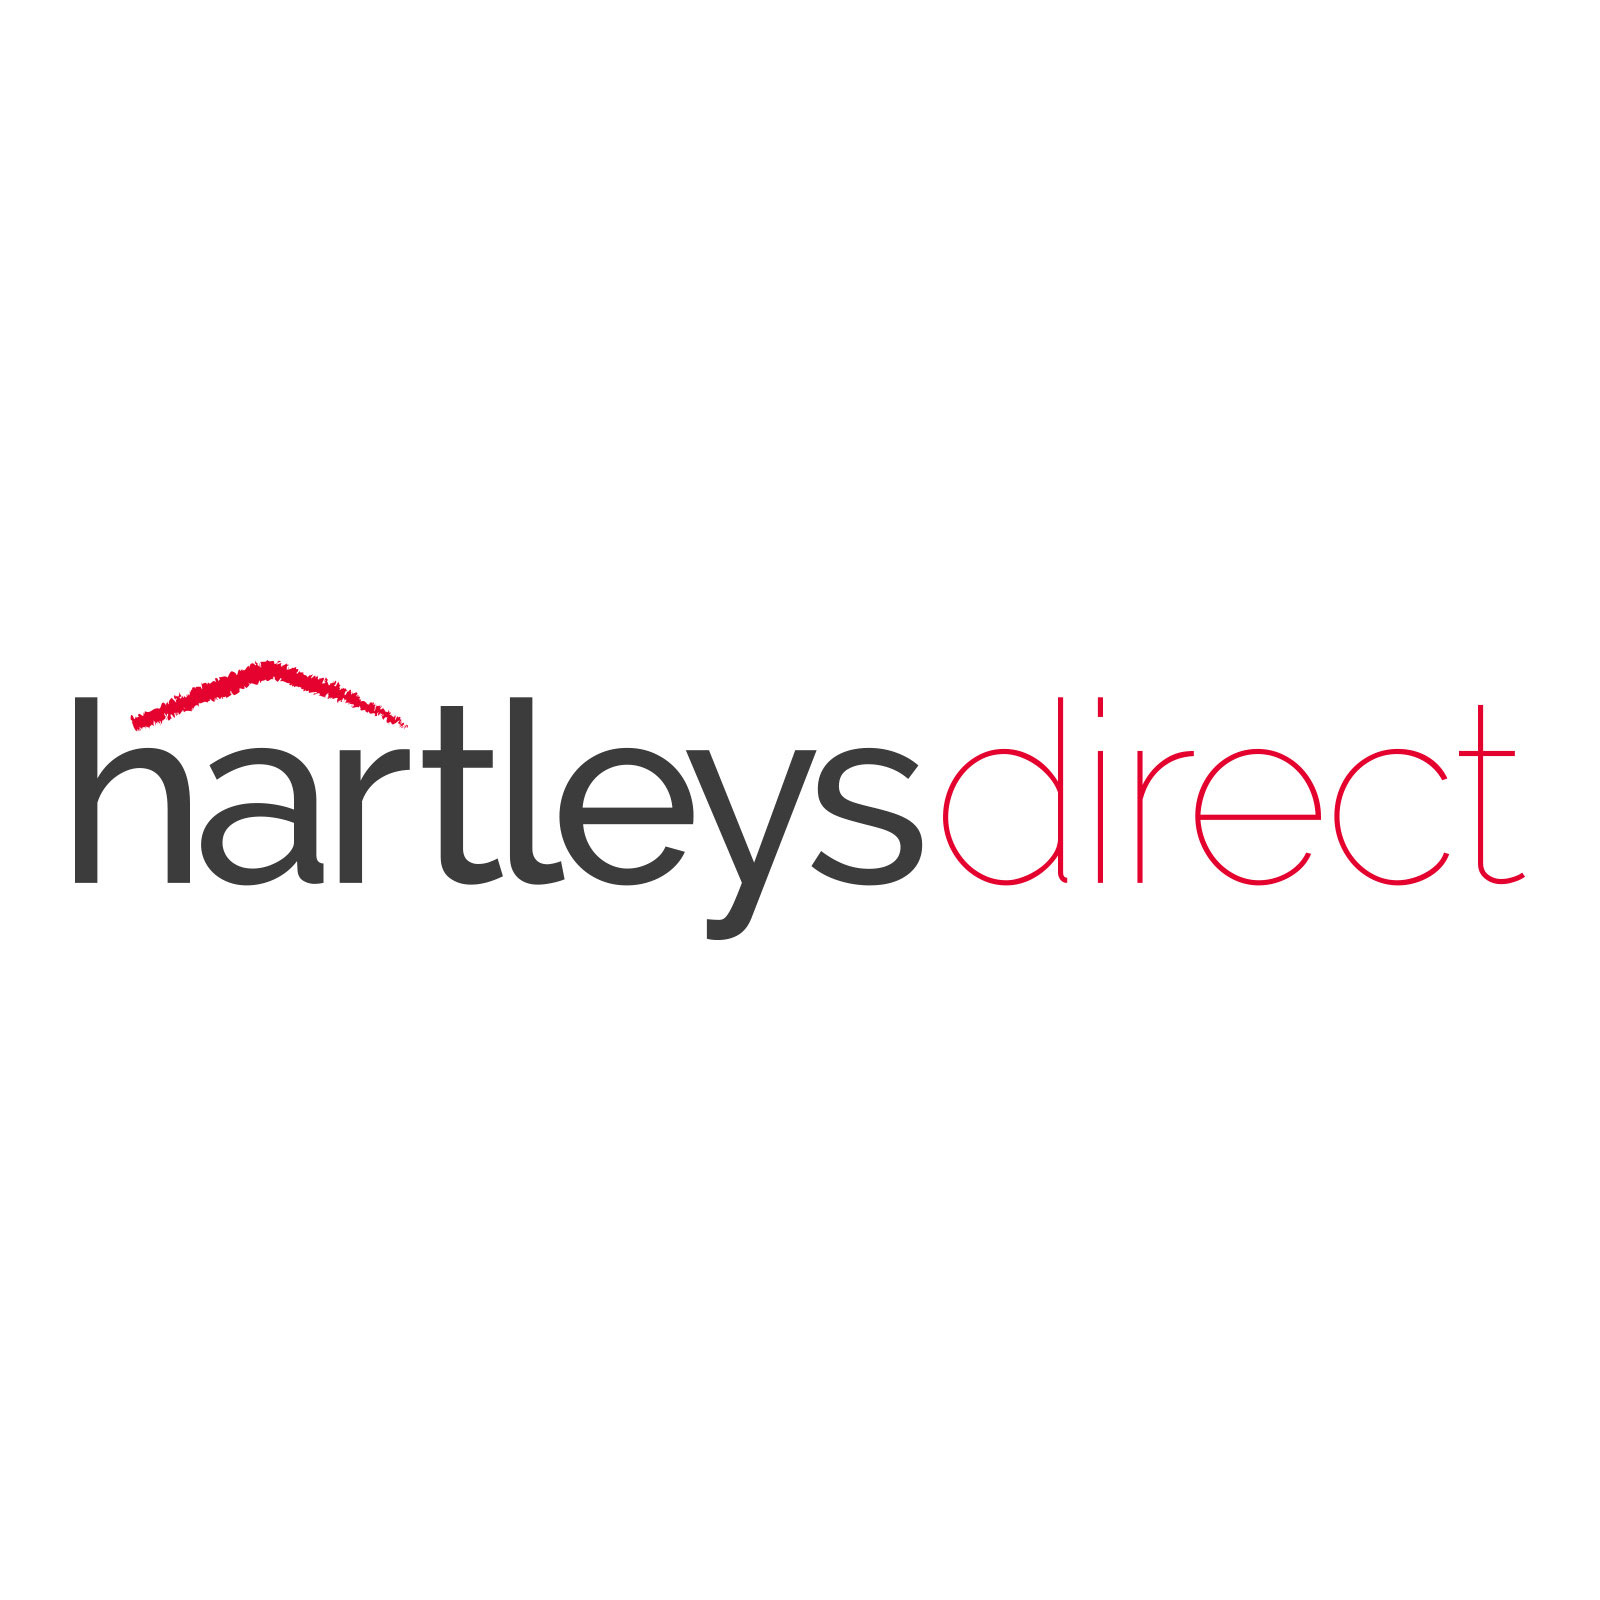 Hartleys-White-and-Black-Wall-Mounted-Letter-Box-on-White-Background.jpg